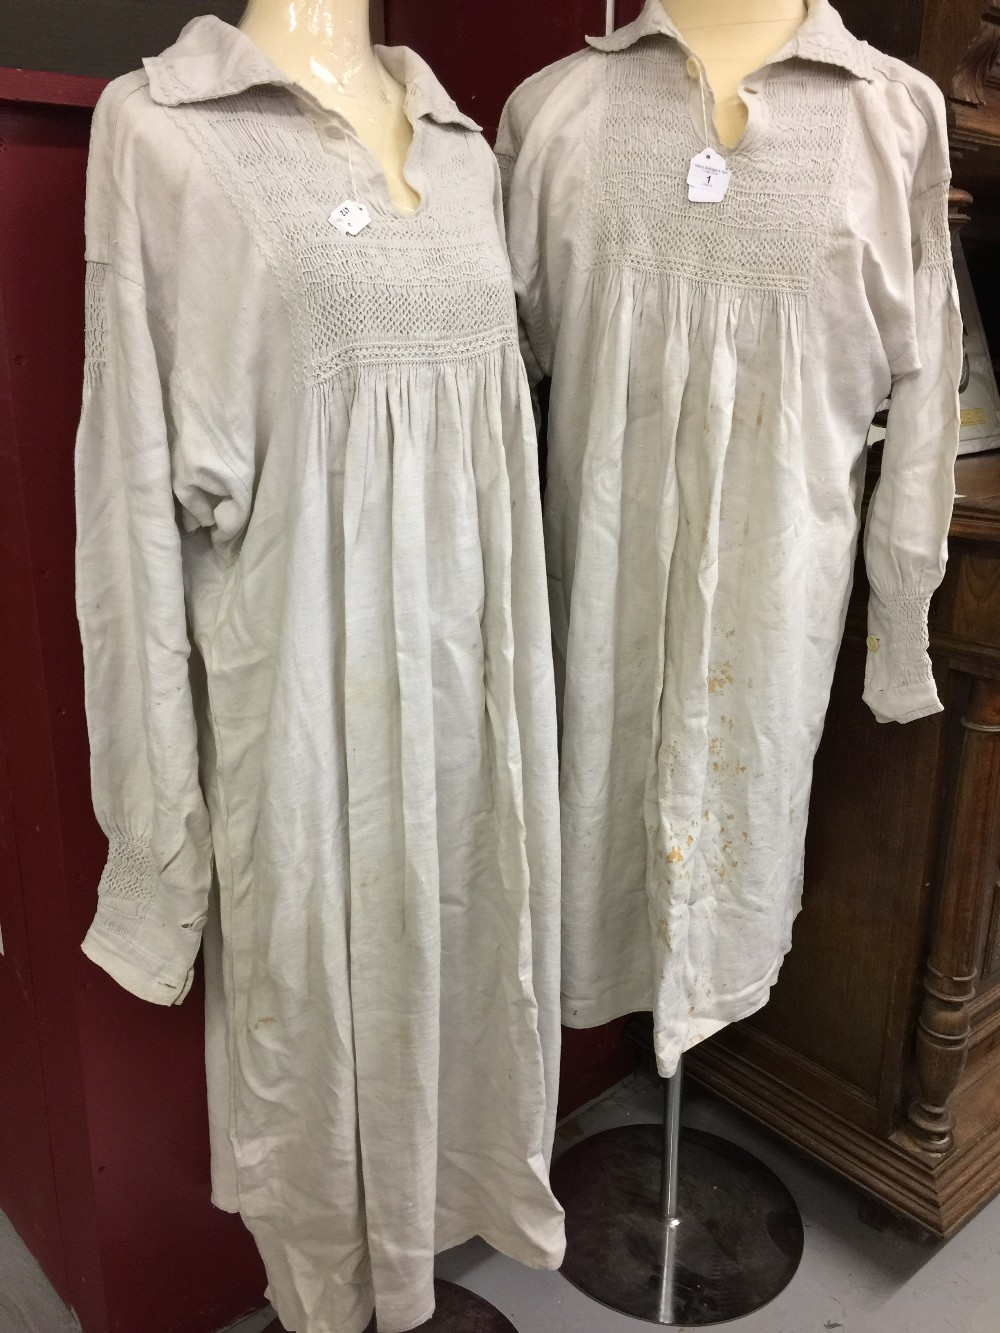 Lot 1 - 19th cent. Agricultural Garments: Linen/cotton smocks, long sleeve, double cuffs, stitching to